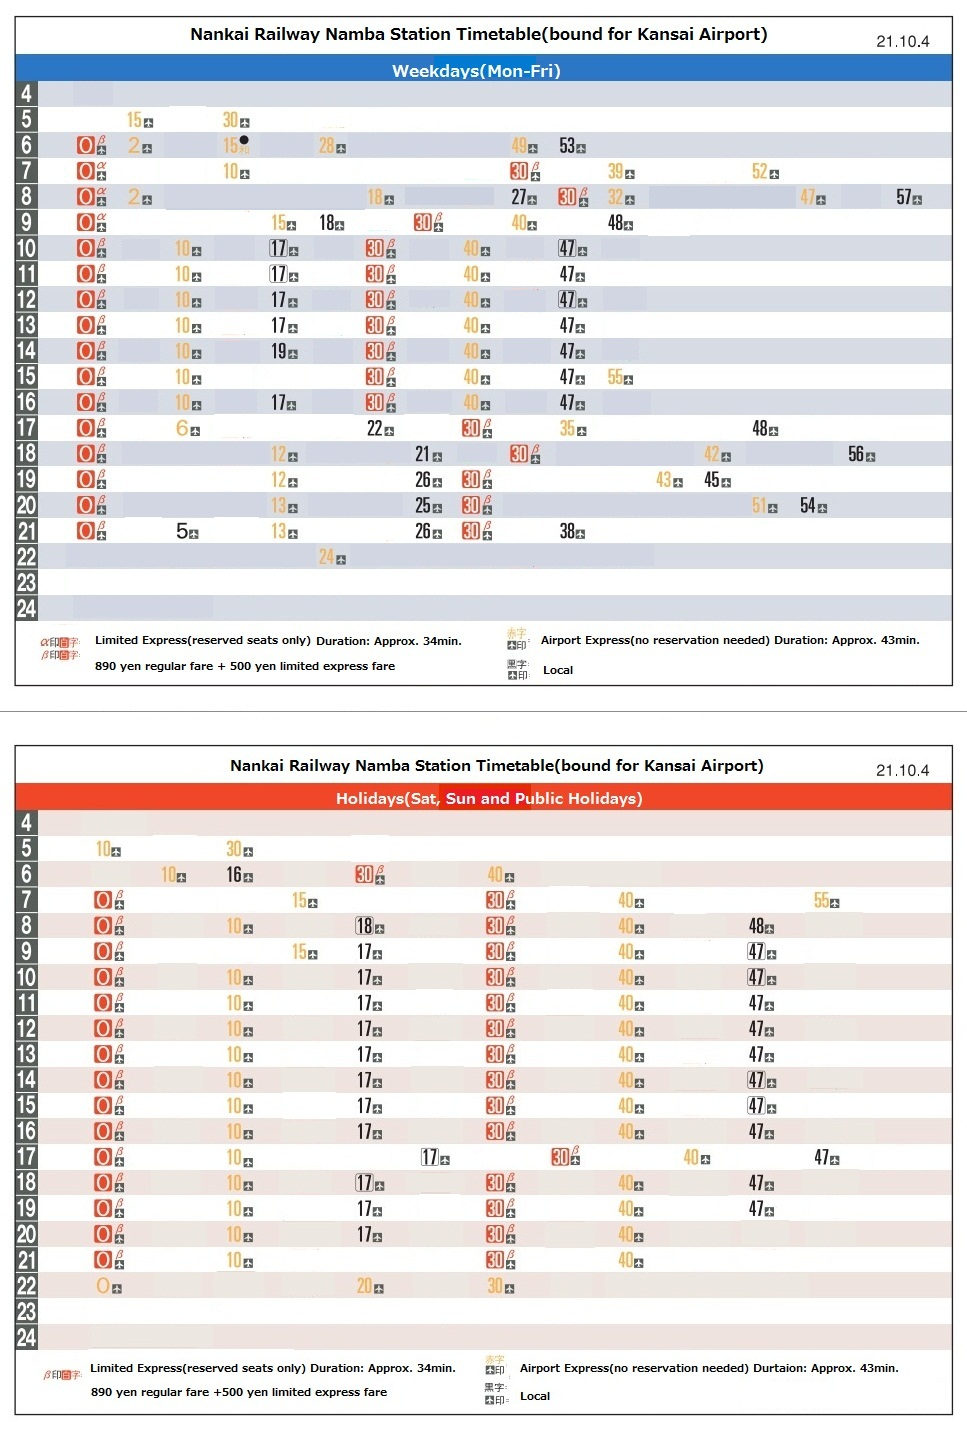 turkish airlines timetable 2017 pdf